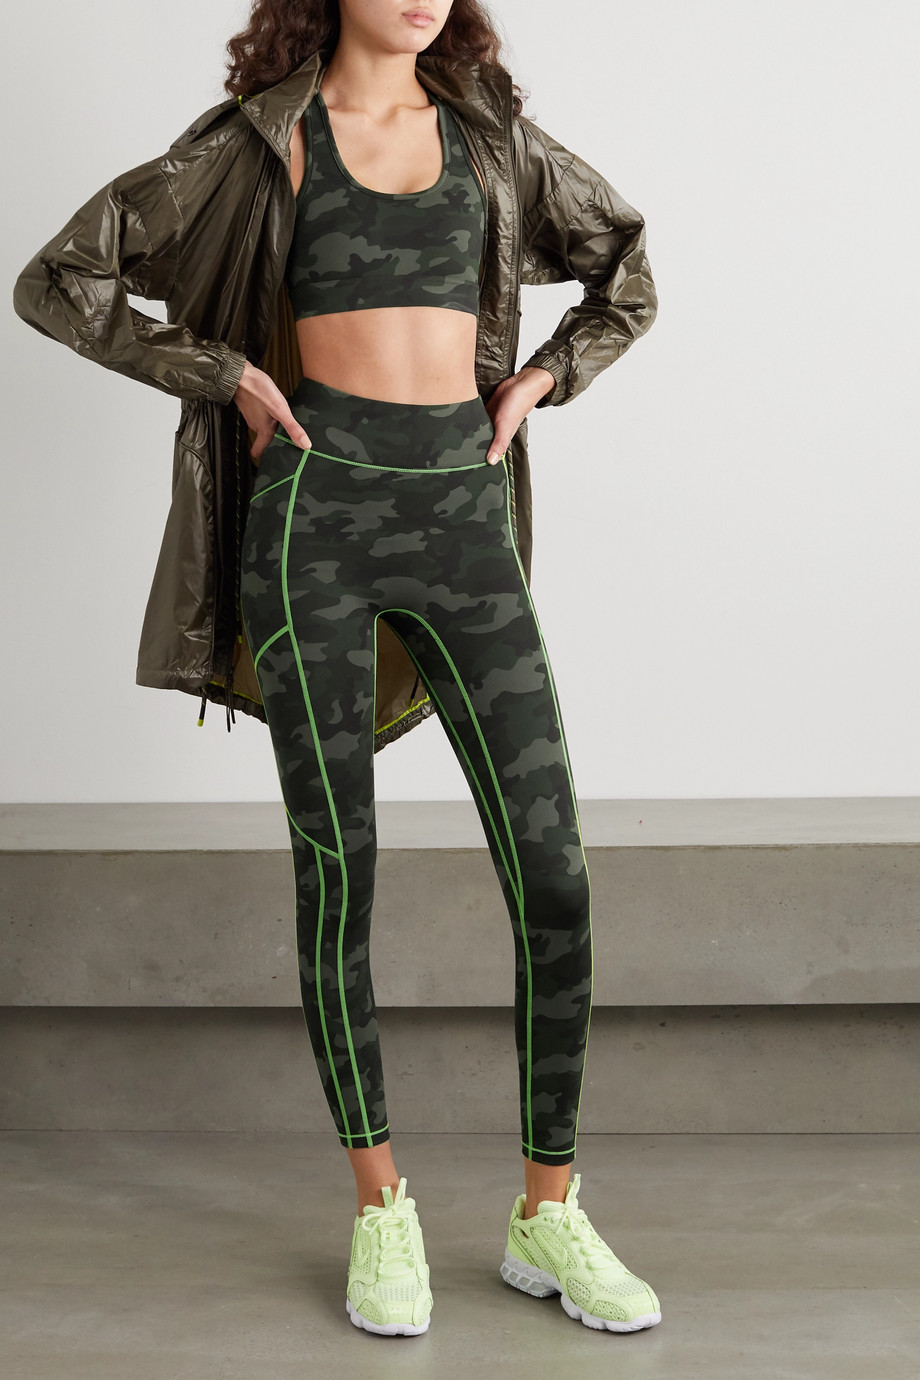 All Access Front Row camouflage-print stretch sports bra